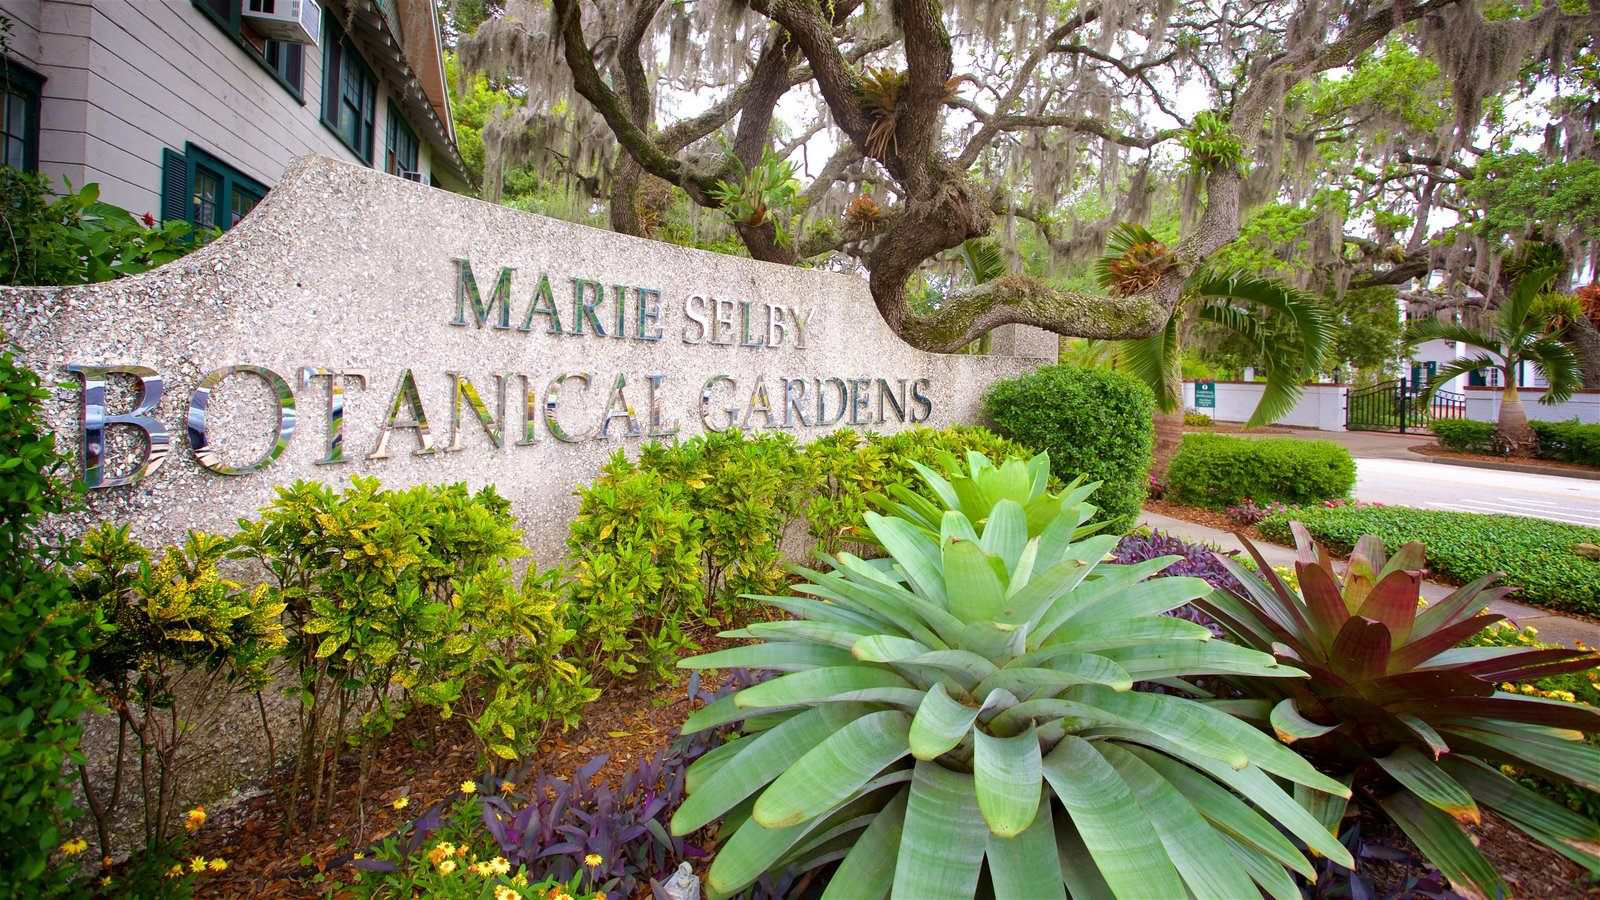 Exceptionnel Sign For The Marie Selby Botanical Gardens